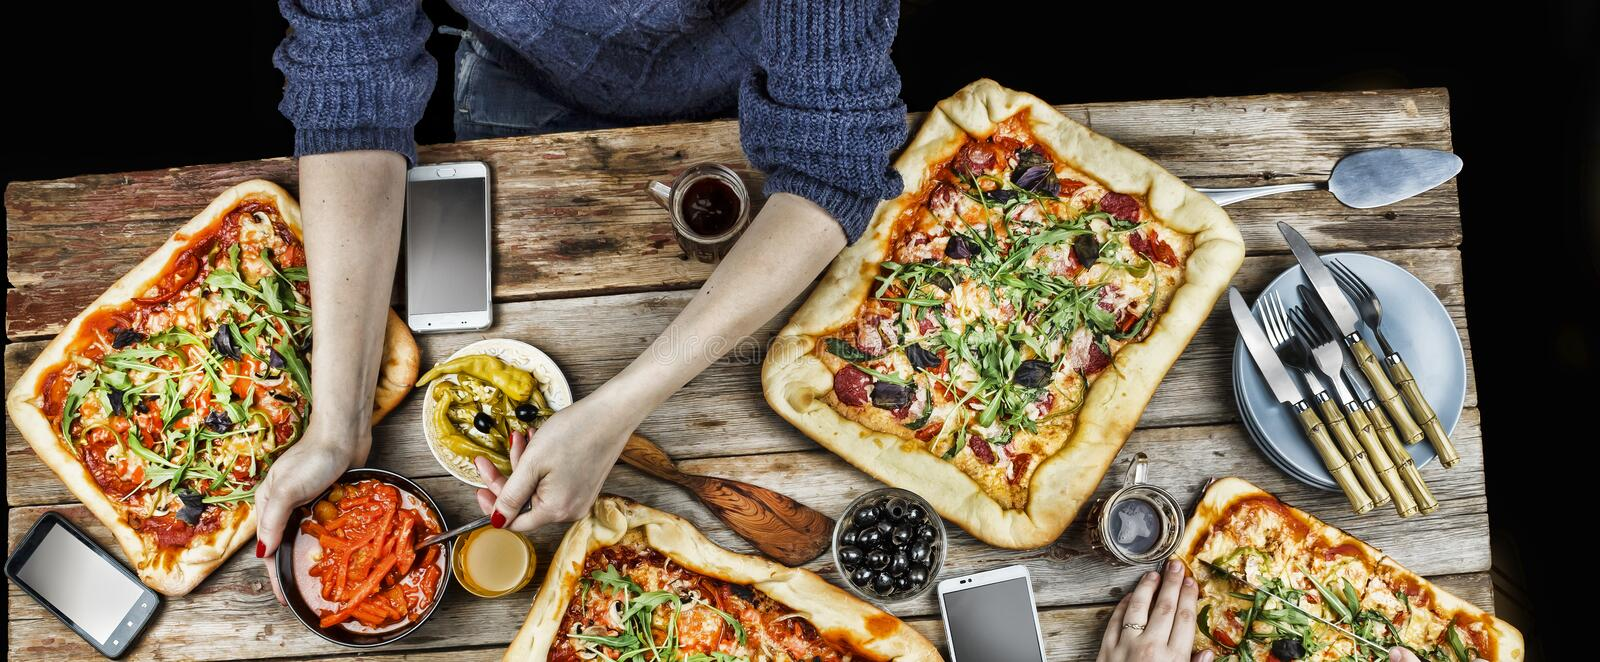 Cutting pizza. Domestic food and homemade pizza. royalty free stock photography